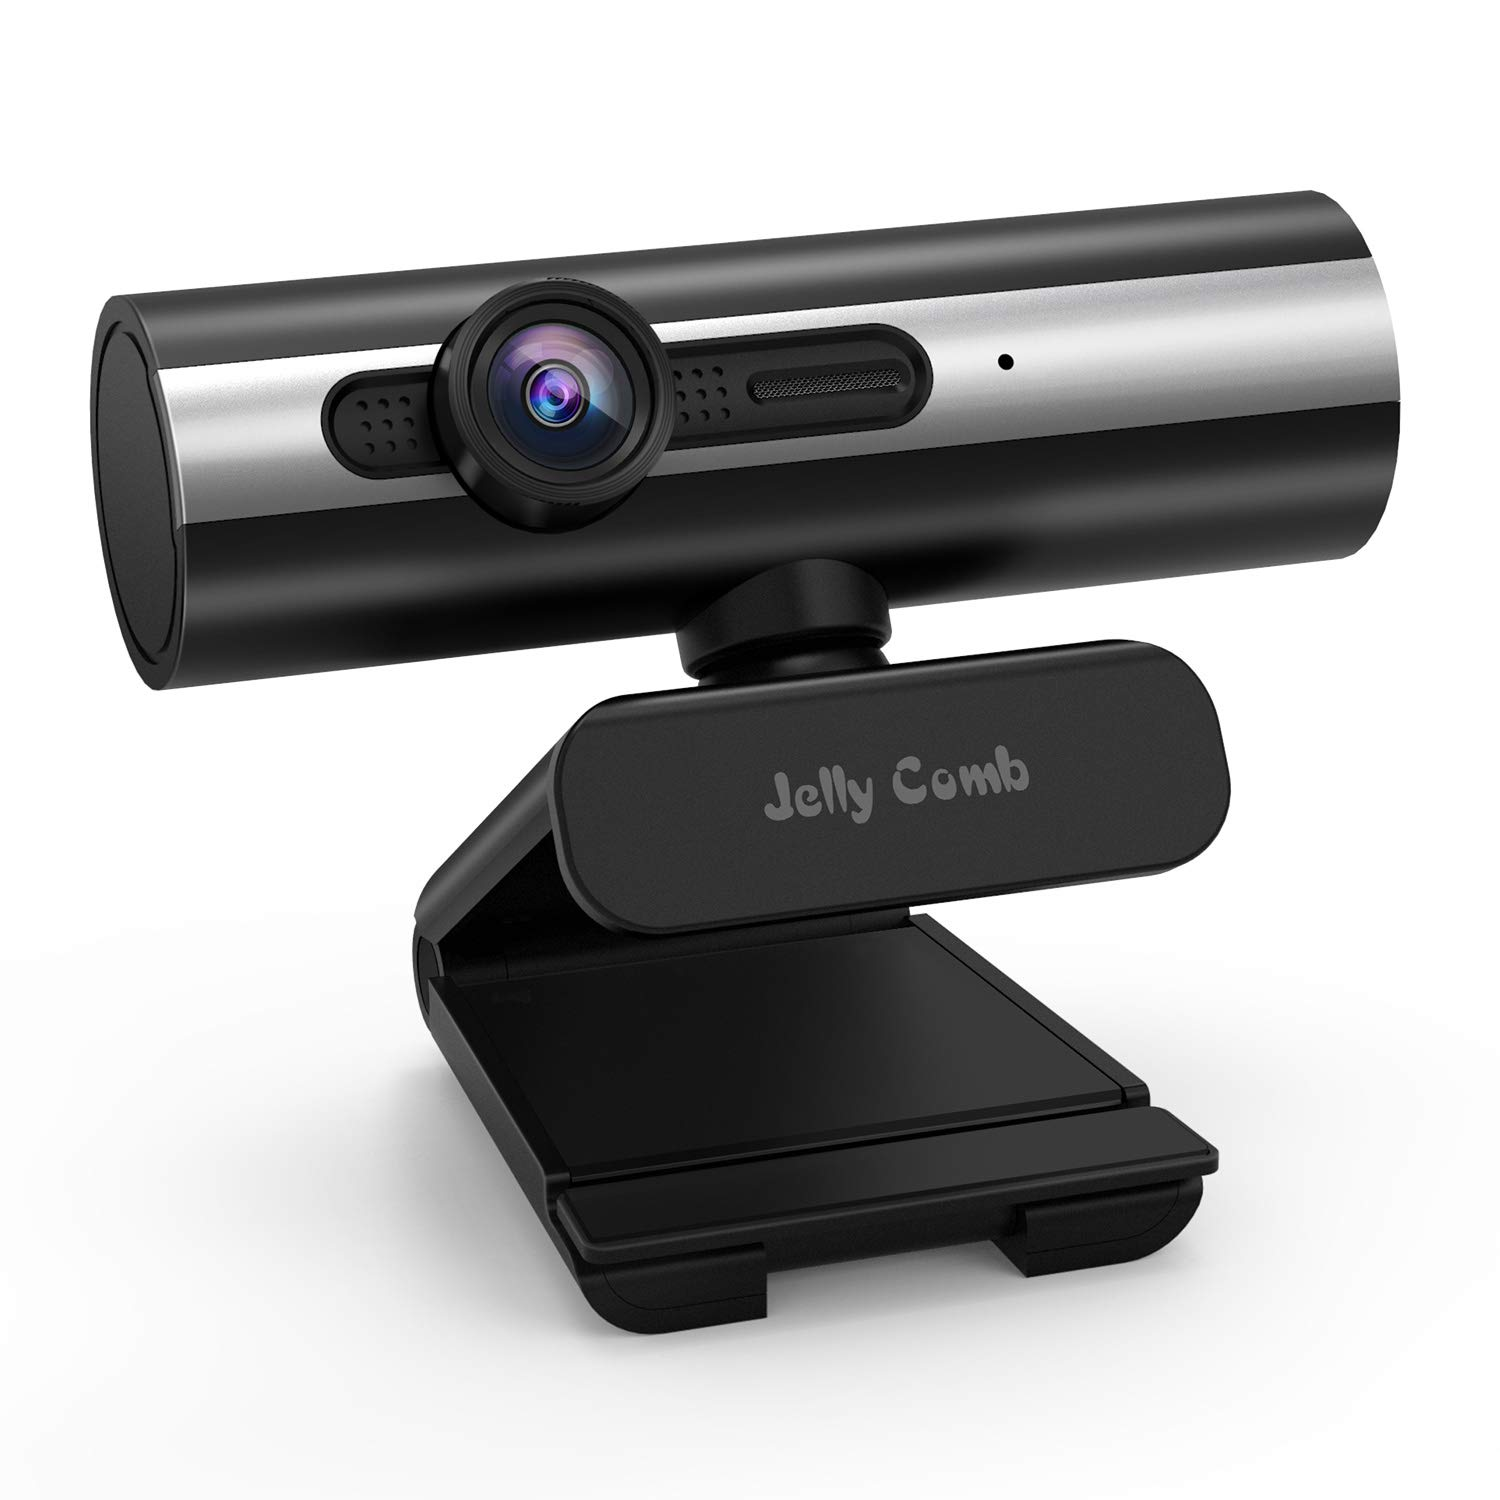 Webcam 1080P Full HD, Jelly Comb Computer Webcam USB Web Camera with Built-in Microphone for Skype, Video Calling,Conferencing, Recording, Streaming by Jelly Comb